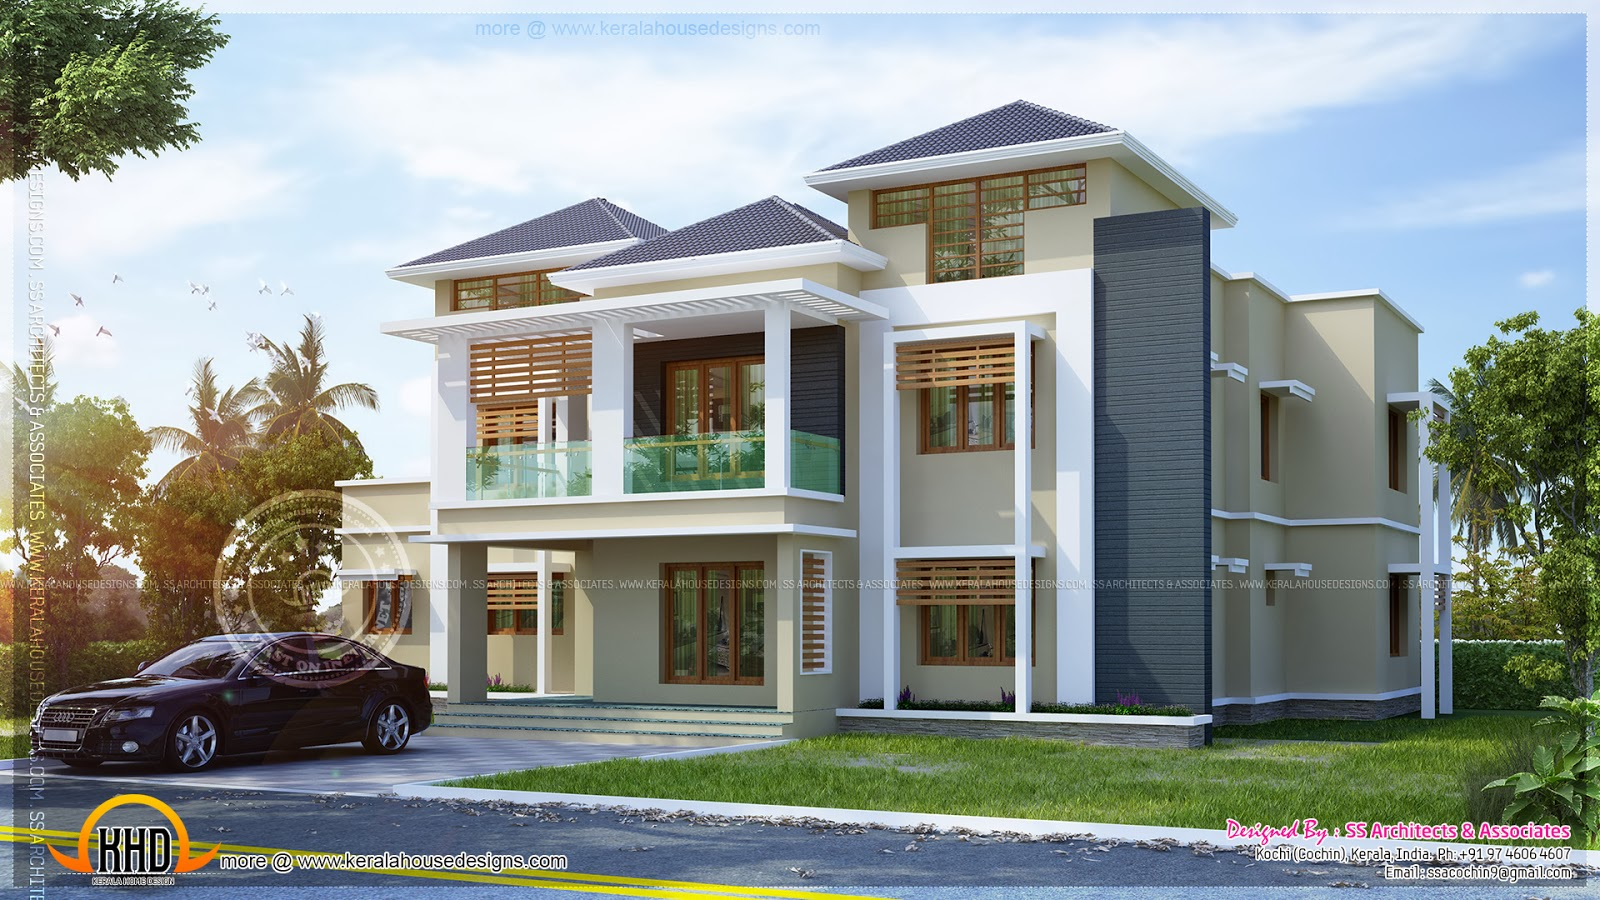 Awesome house plan kerala home design and floor plans for Best house design 2014